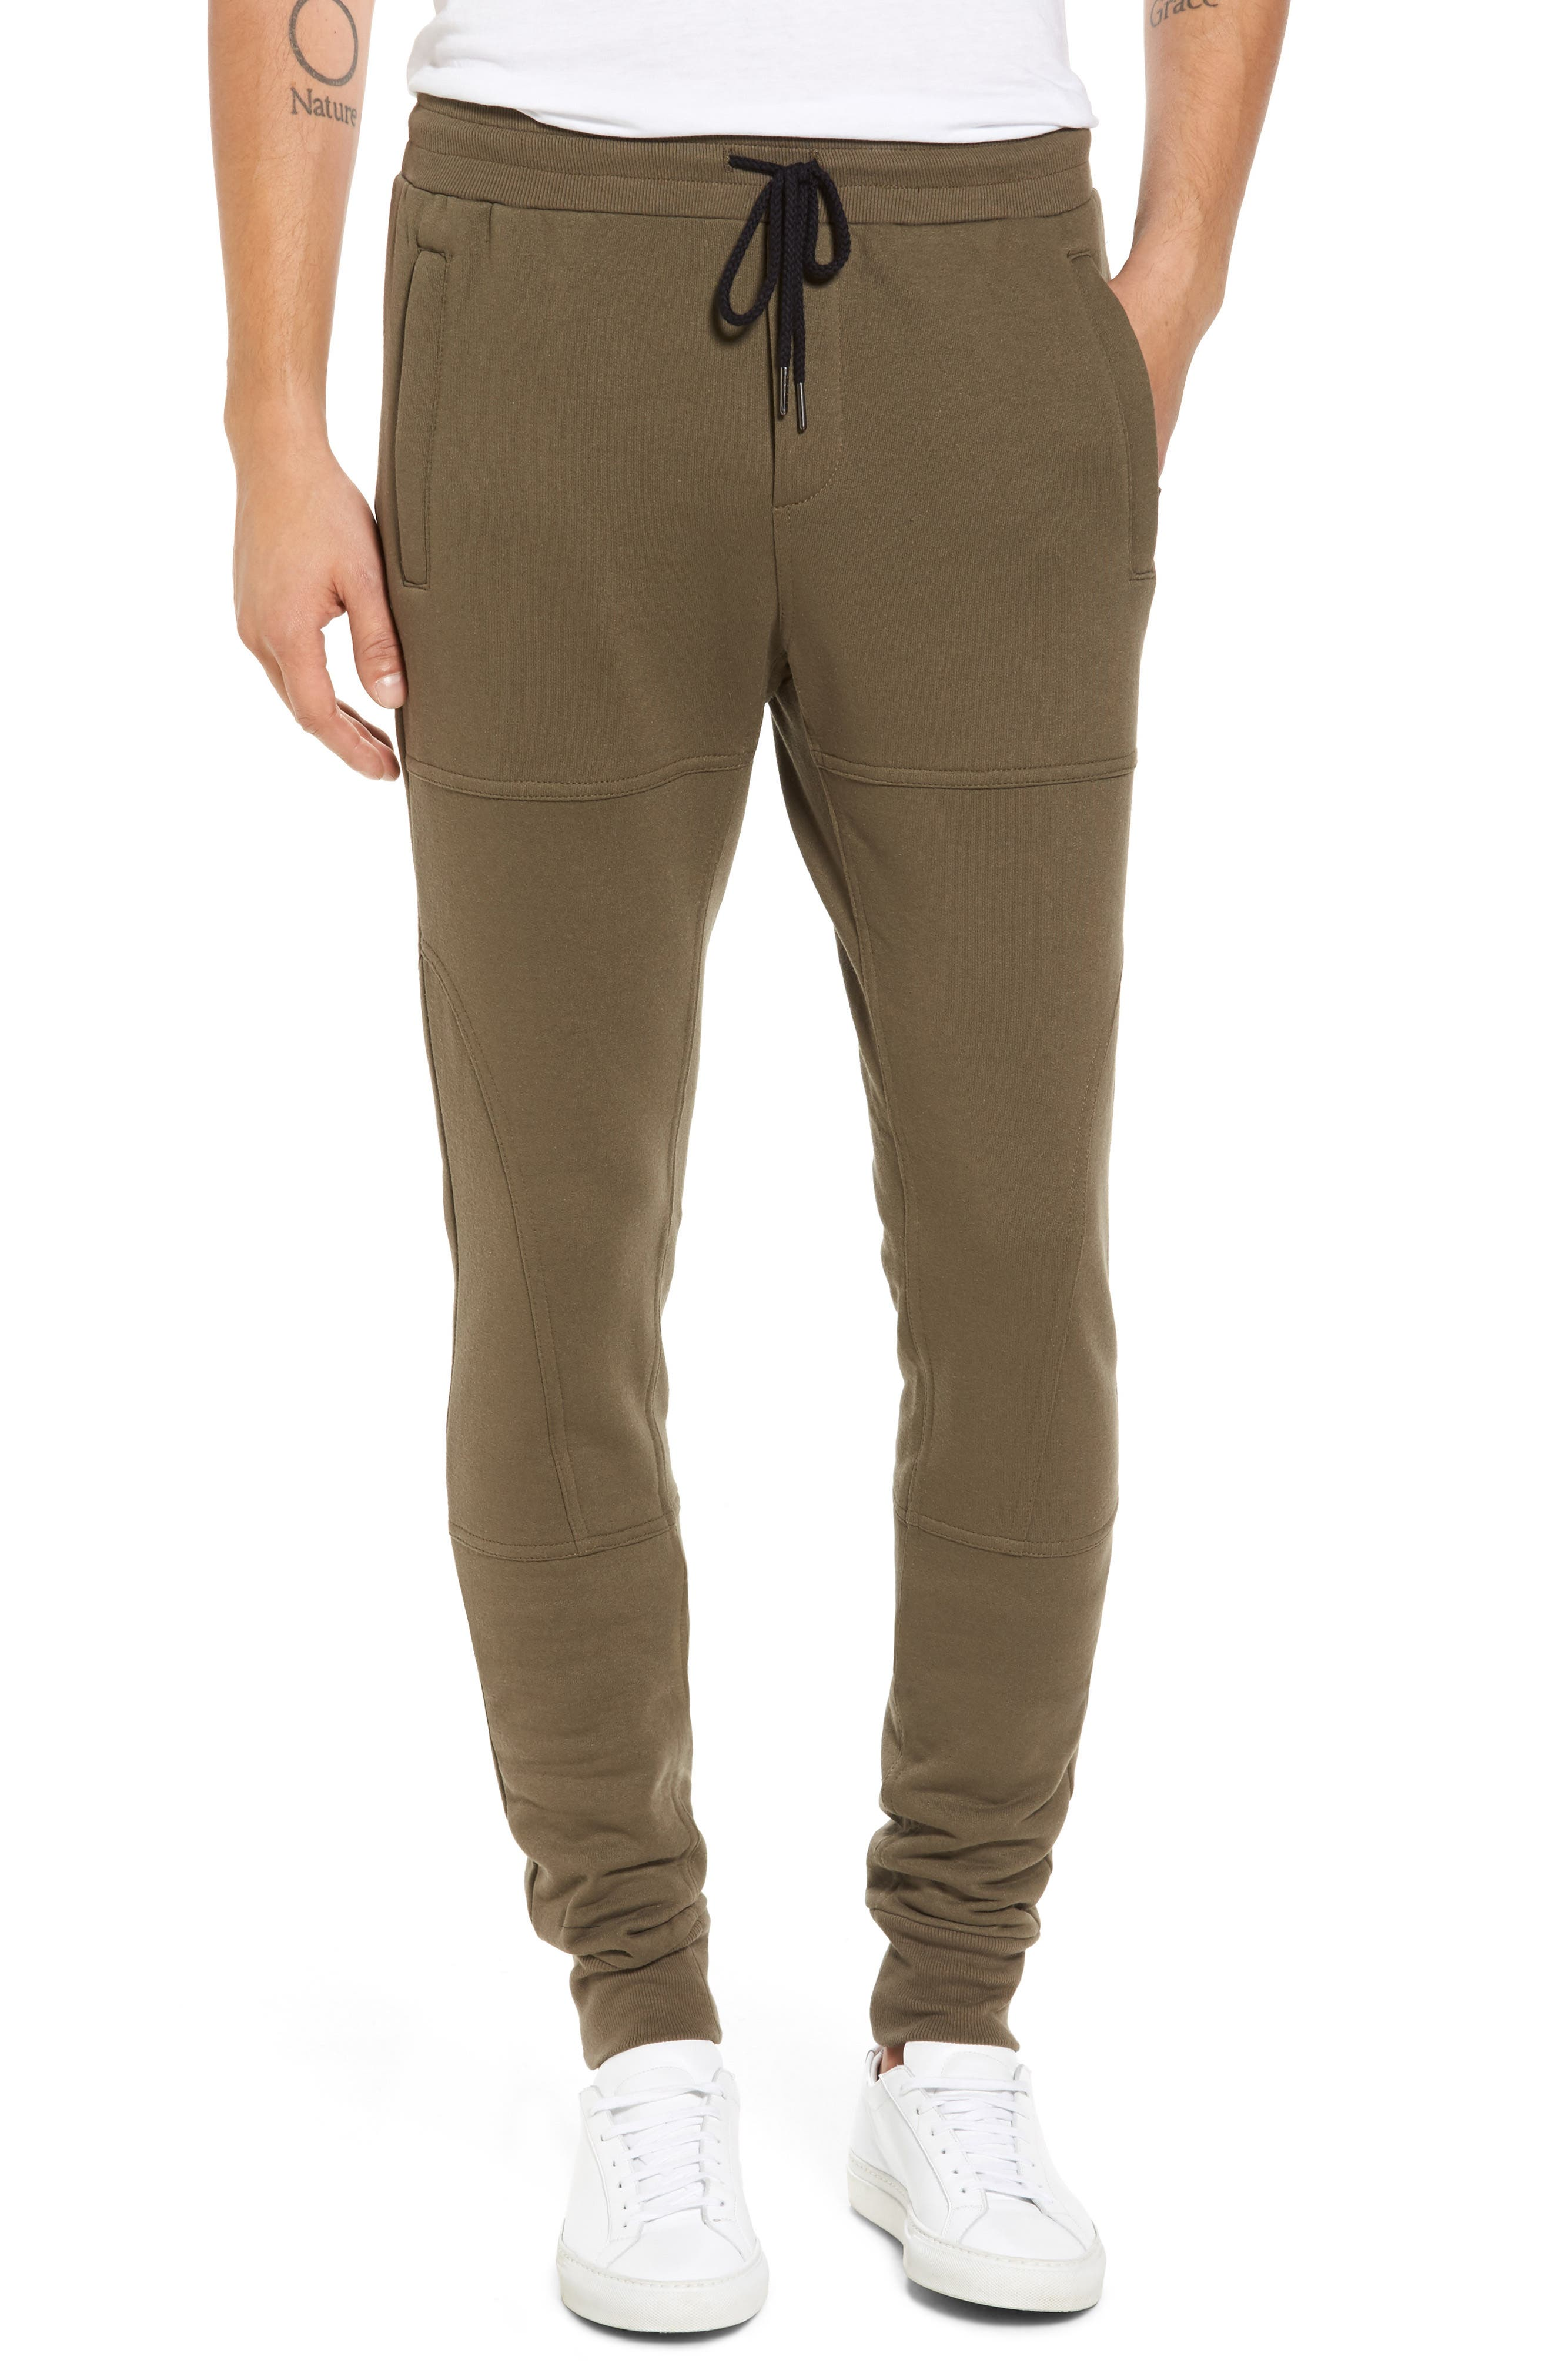 French Terry Sweatpants,                         Main,                         color, Army